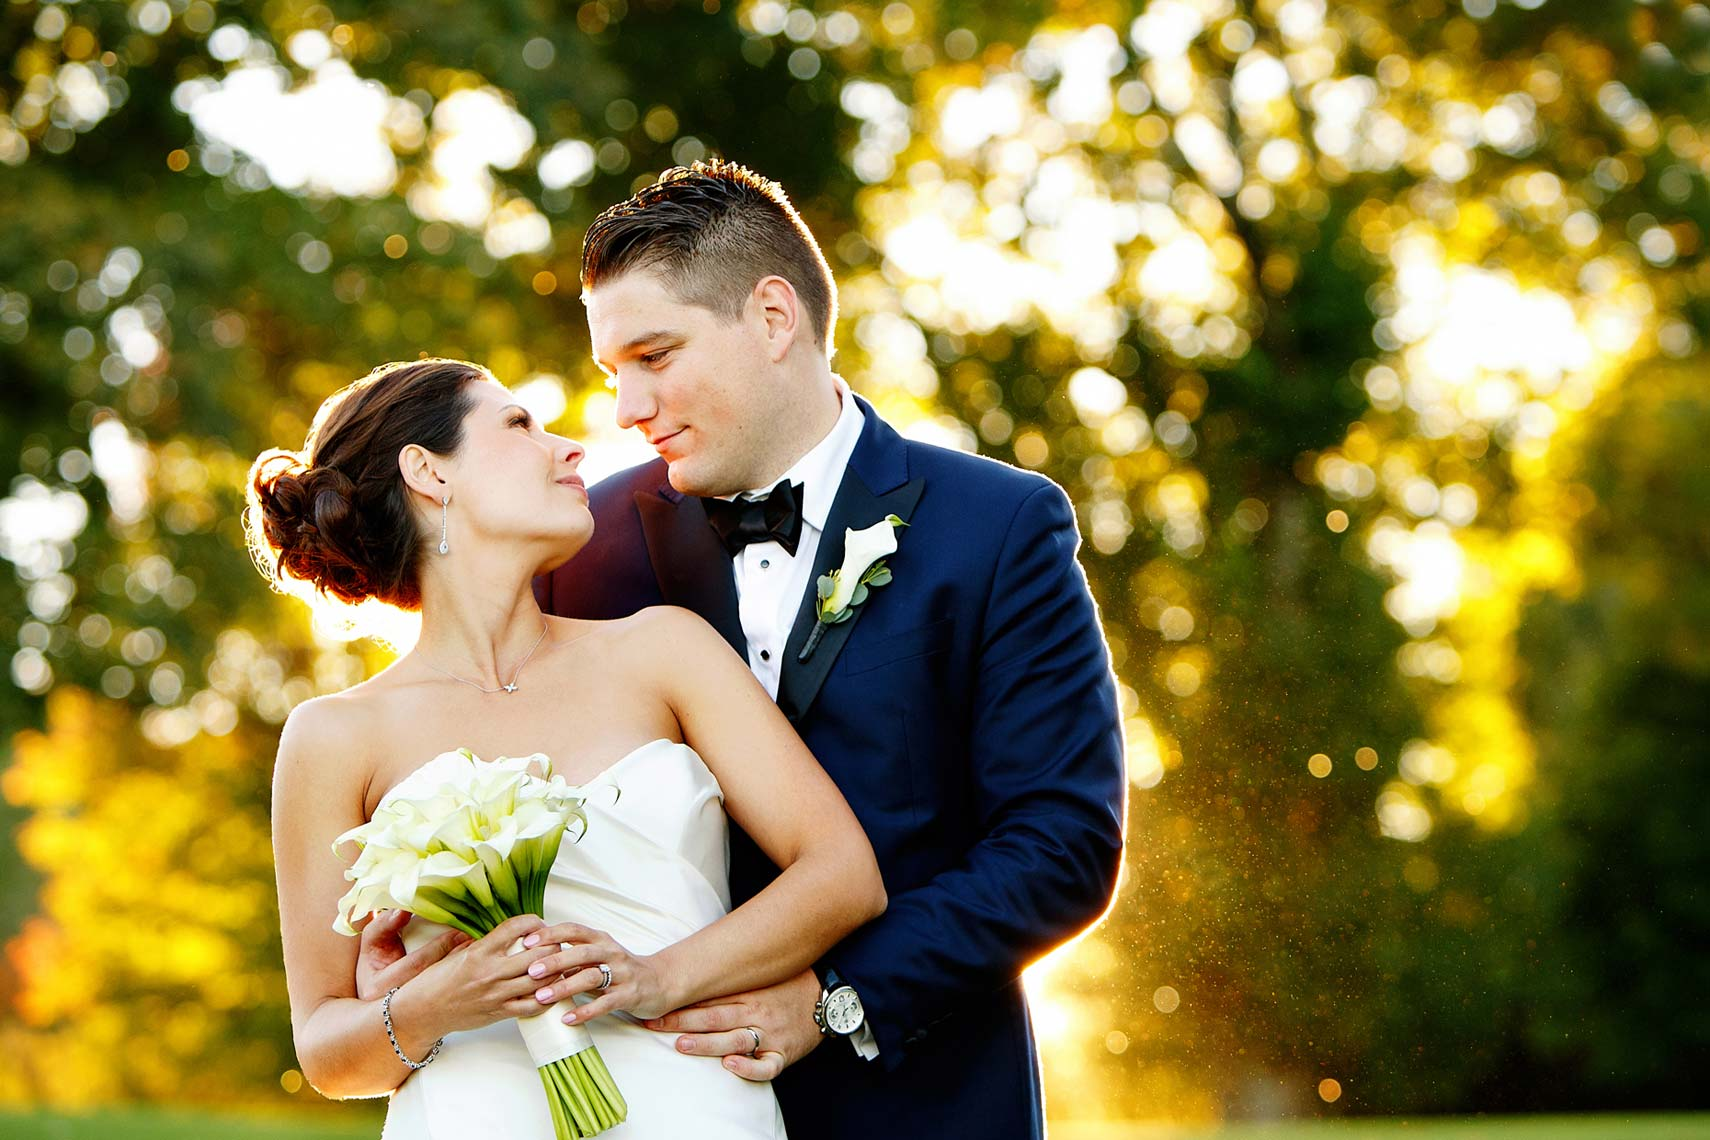 How To Create Better Reception Photos With Your Flash Minute Wedding flash photography techniques